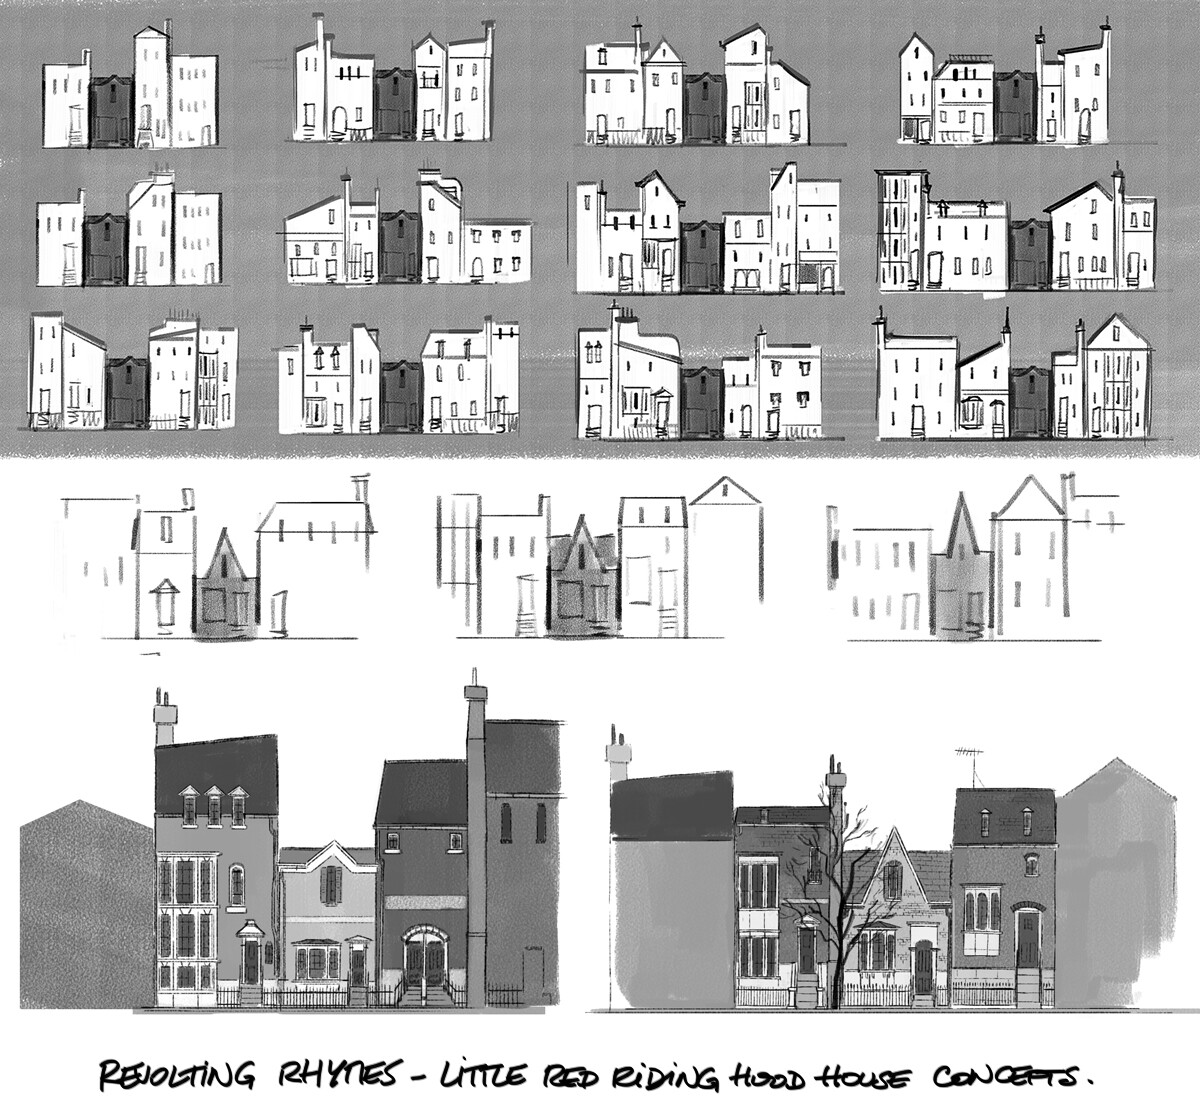 """""""Little Red Riding Hood"""" house concepts"""